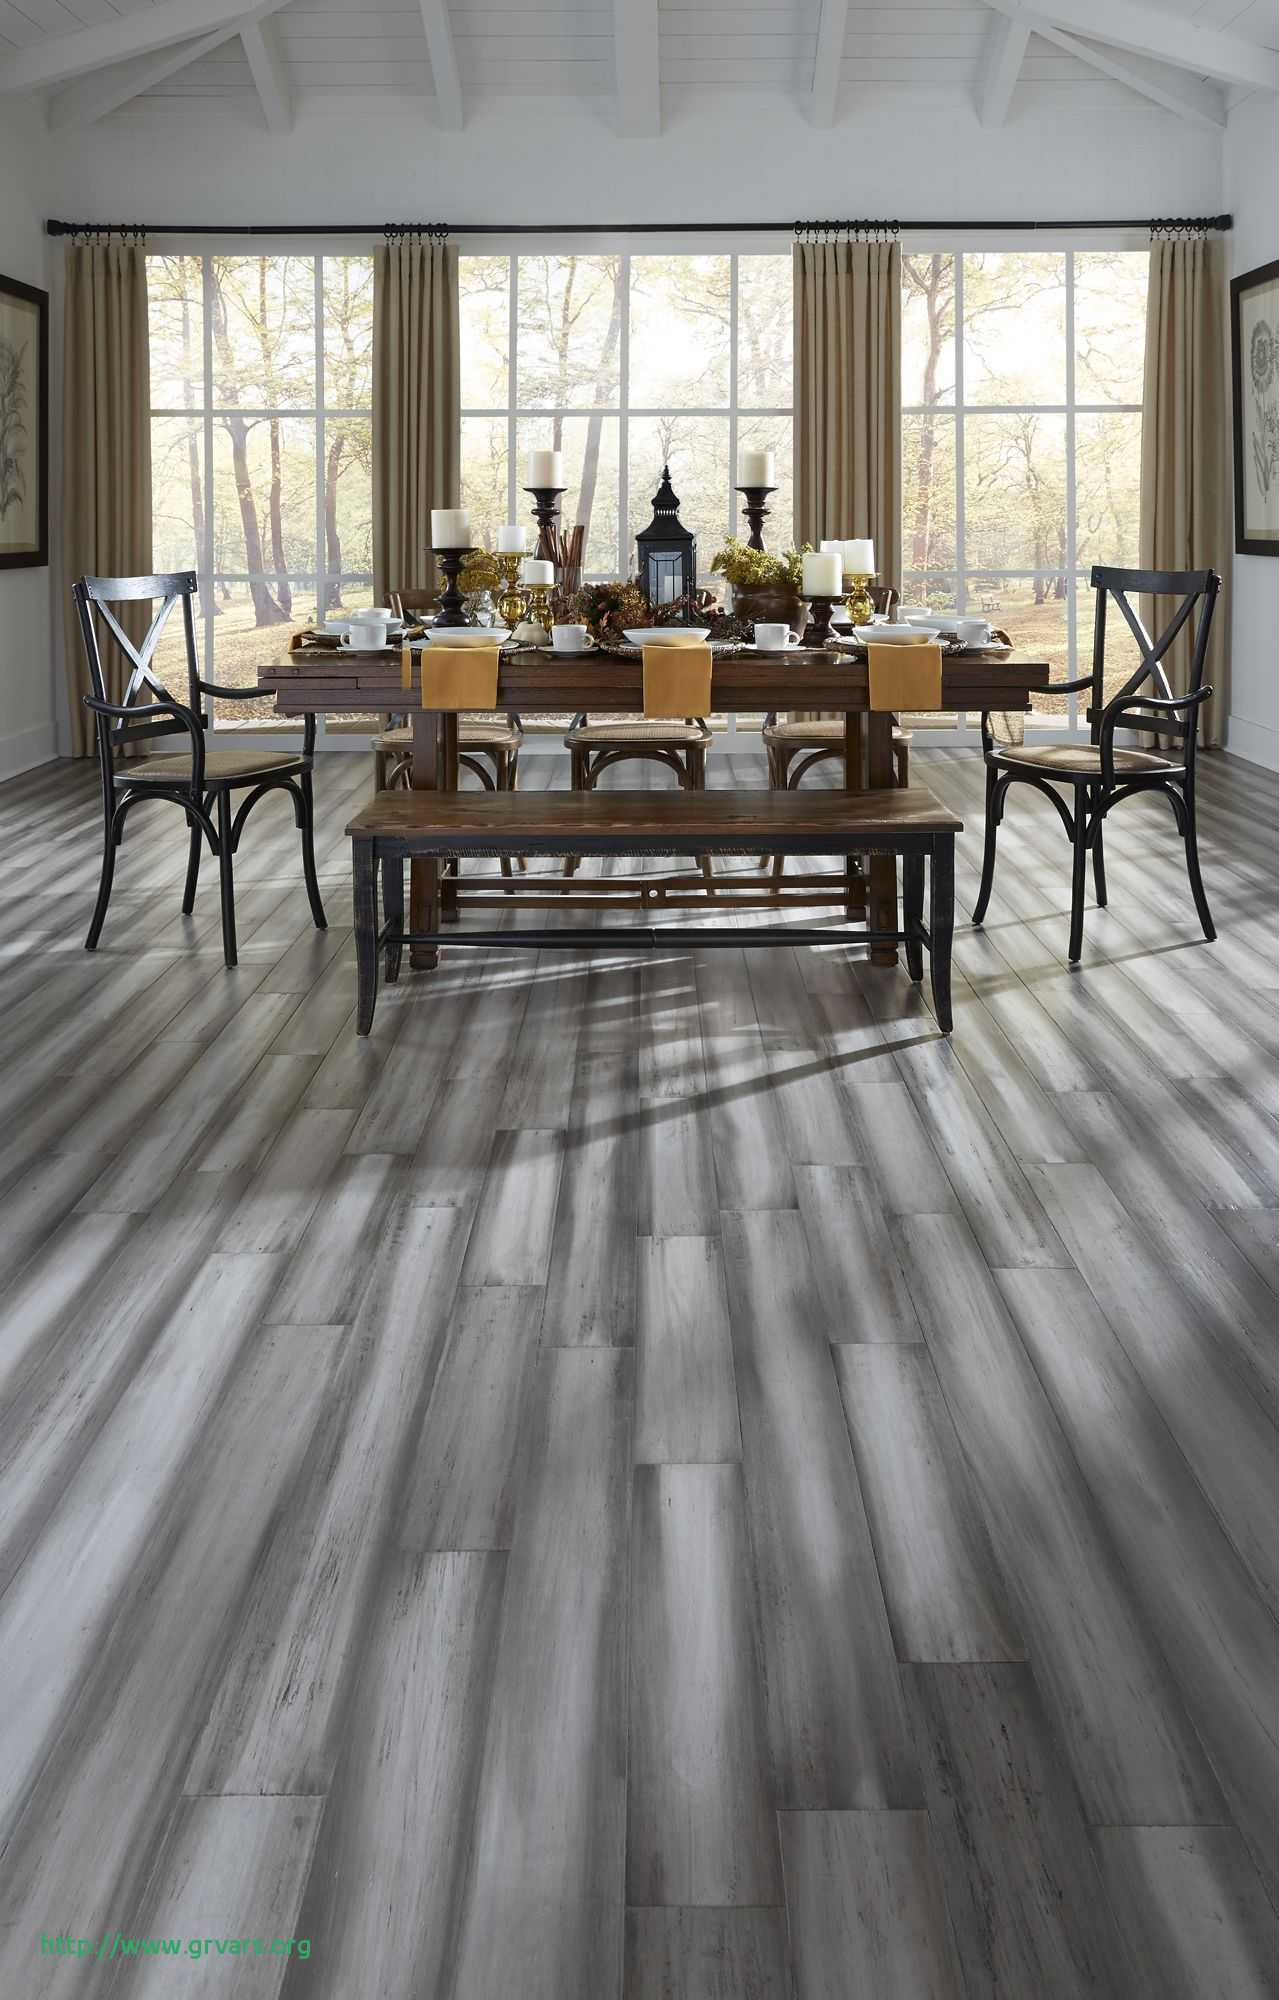 carbonized bamboo hardwood flooring of 20 charmant how to care for bamboo floors ideas blog for 20 photos of the 20 charmant how to care for bamboo floors